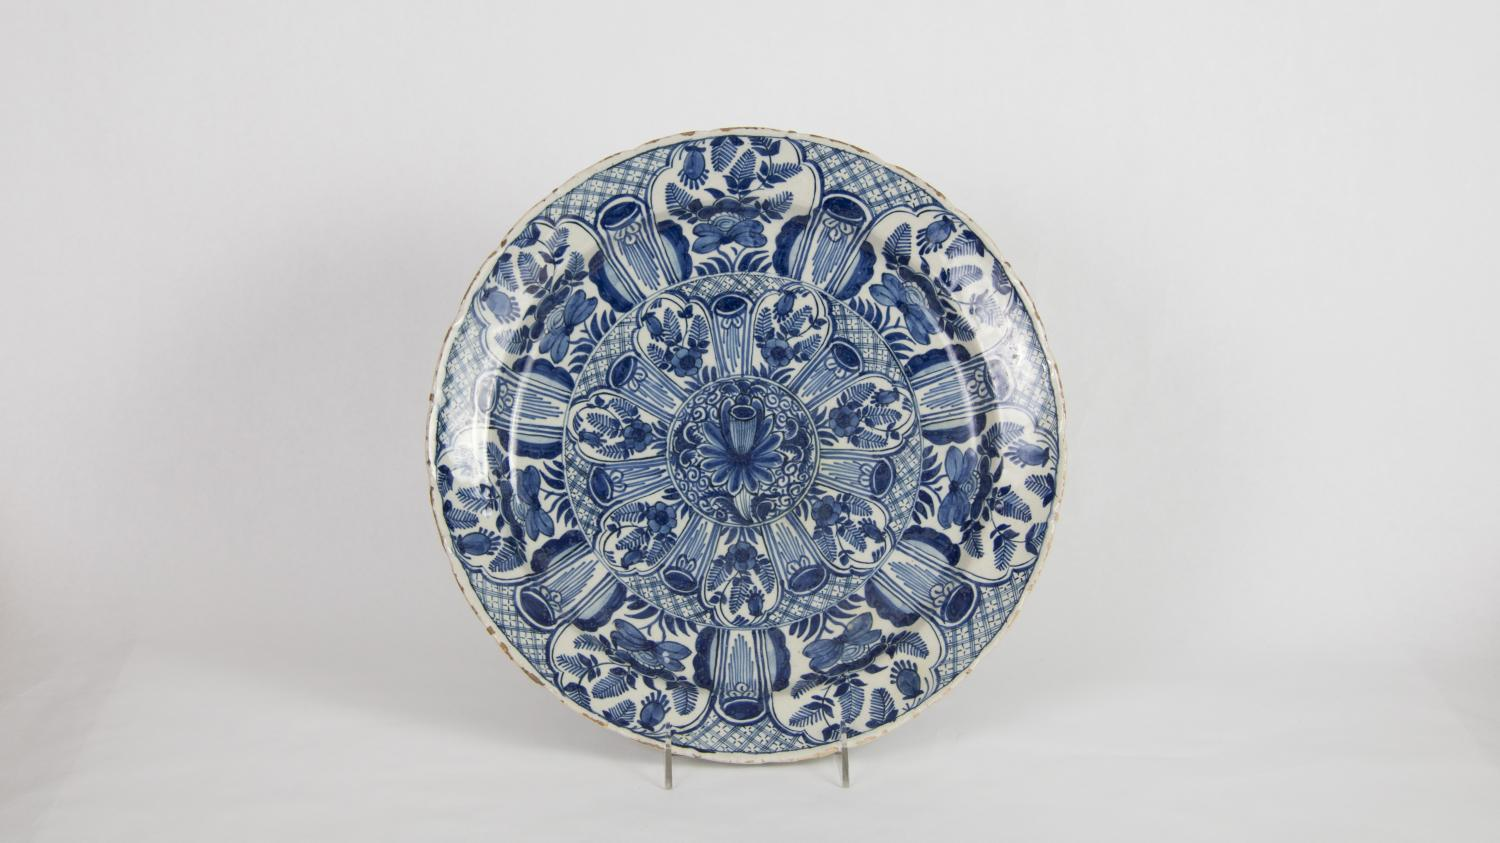 Cornelis Aelbrechtsz Keyser, Charger, 17th century. Tin-glazed earthenware. Museum purchase through the Harlan E. Moore Charitable Trust fund 1988-15-1